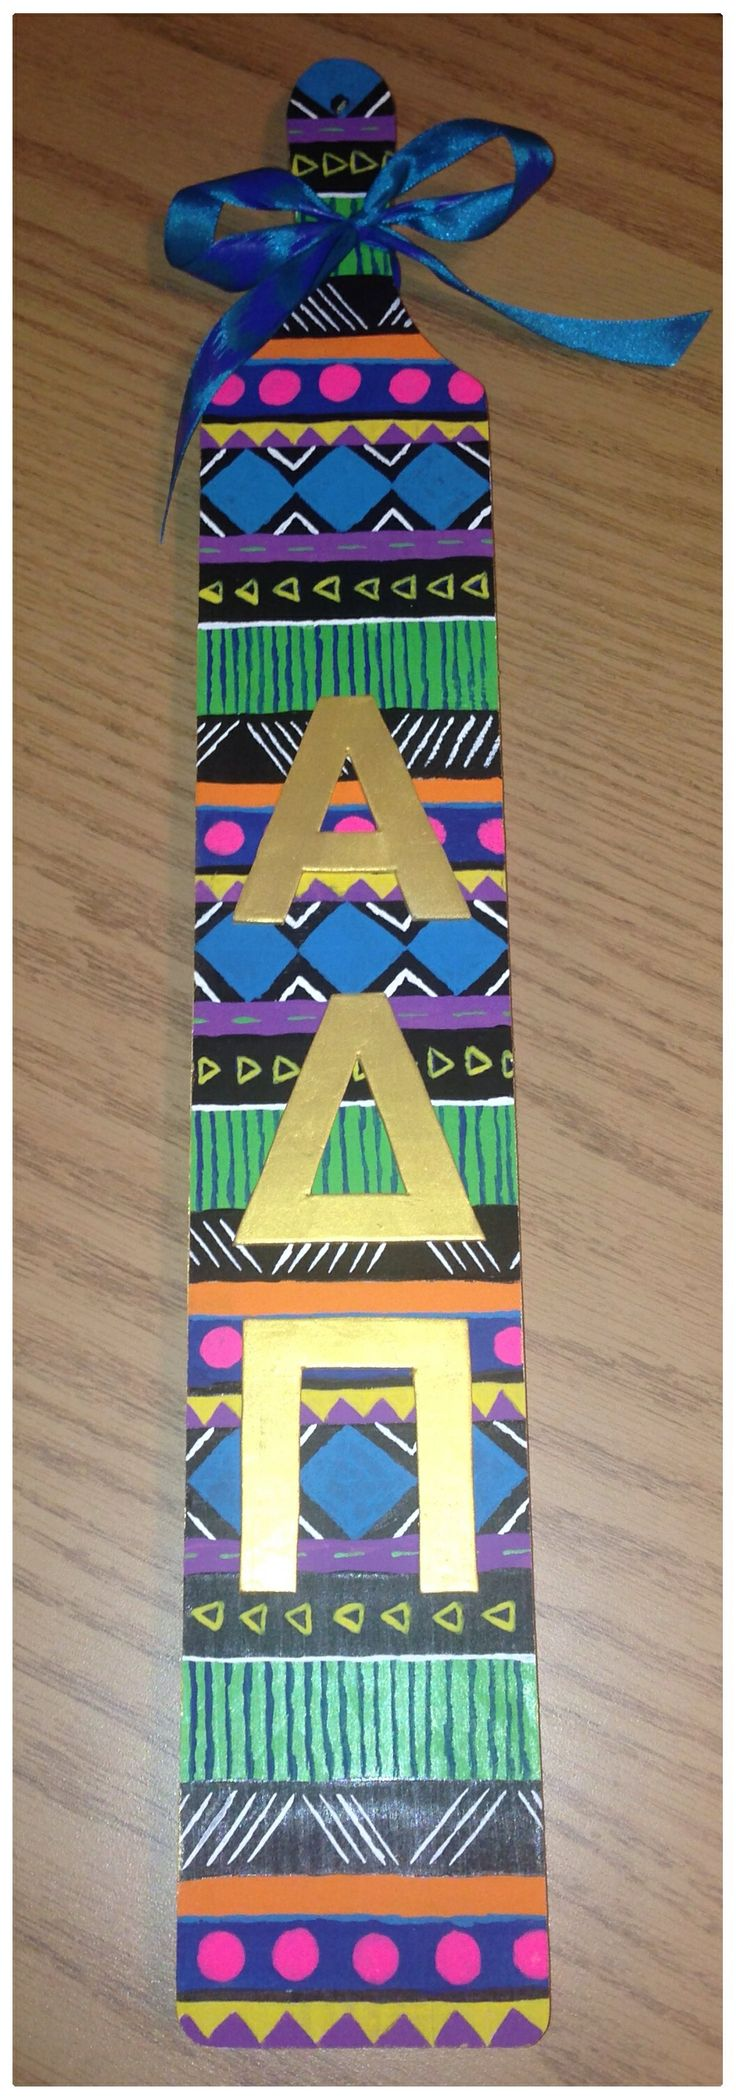 I don't like the shape of this paddle at all but I love the pattern, and it need more on it like big and little, names, pledge class, crest, etc.